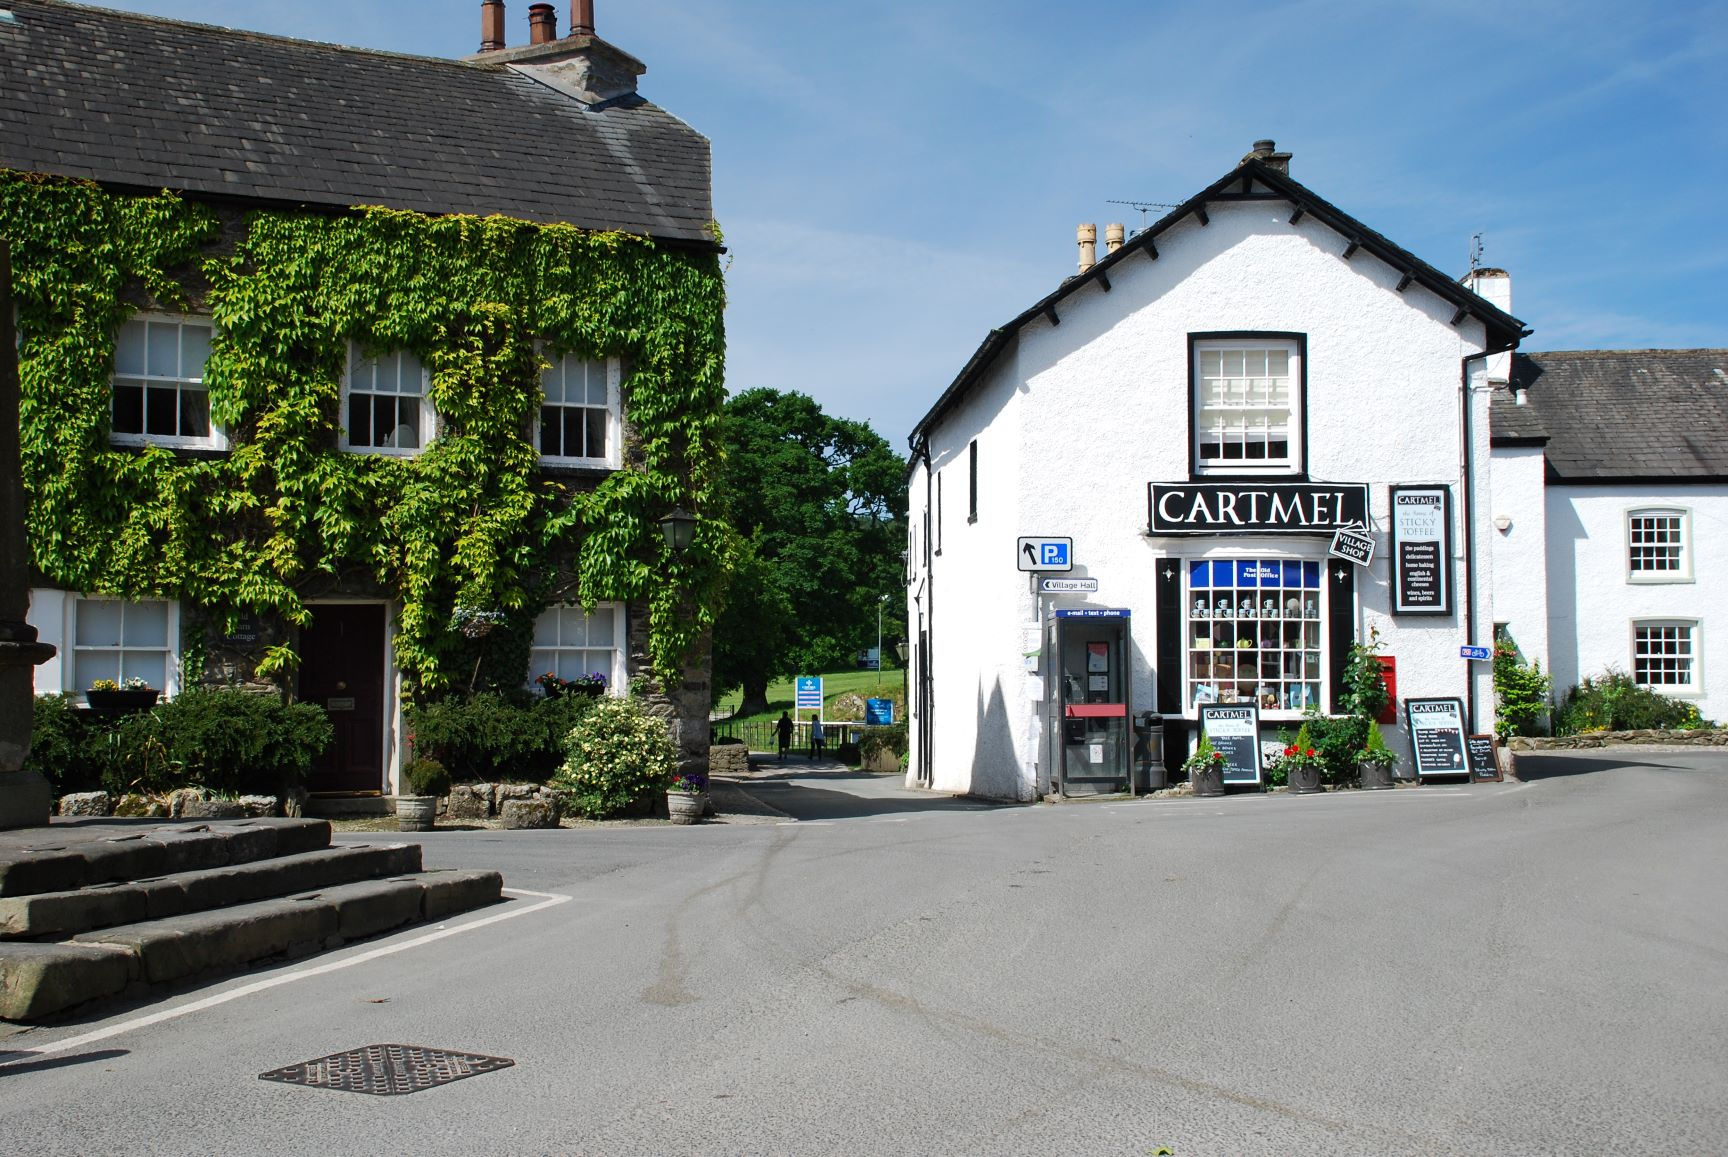 Cartmel Village Square and shop